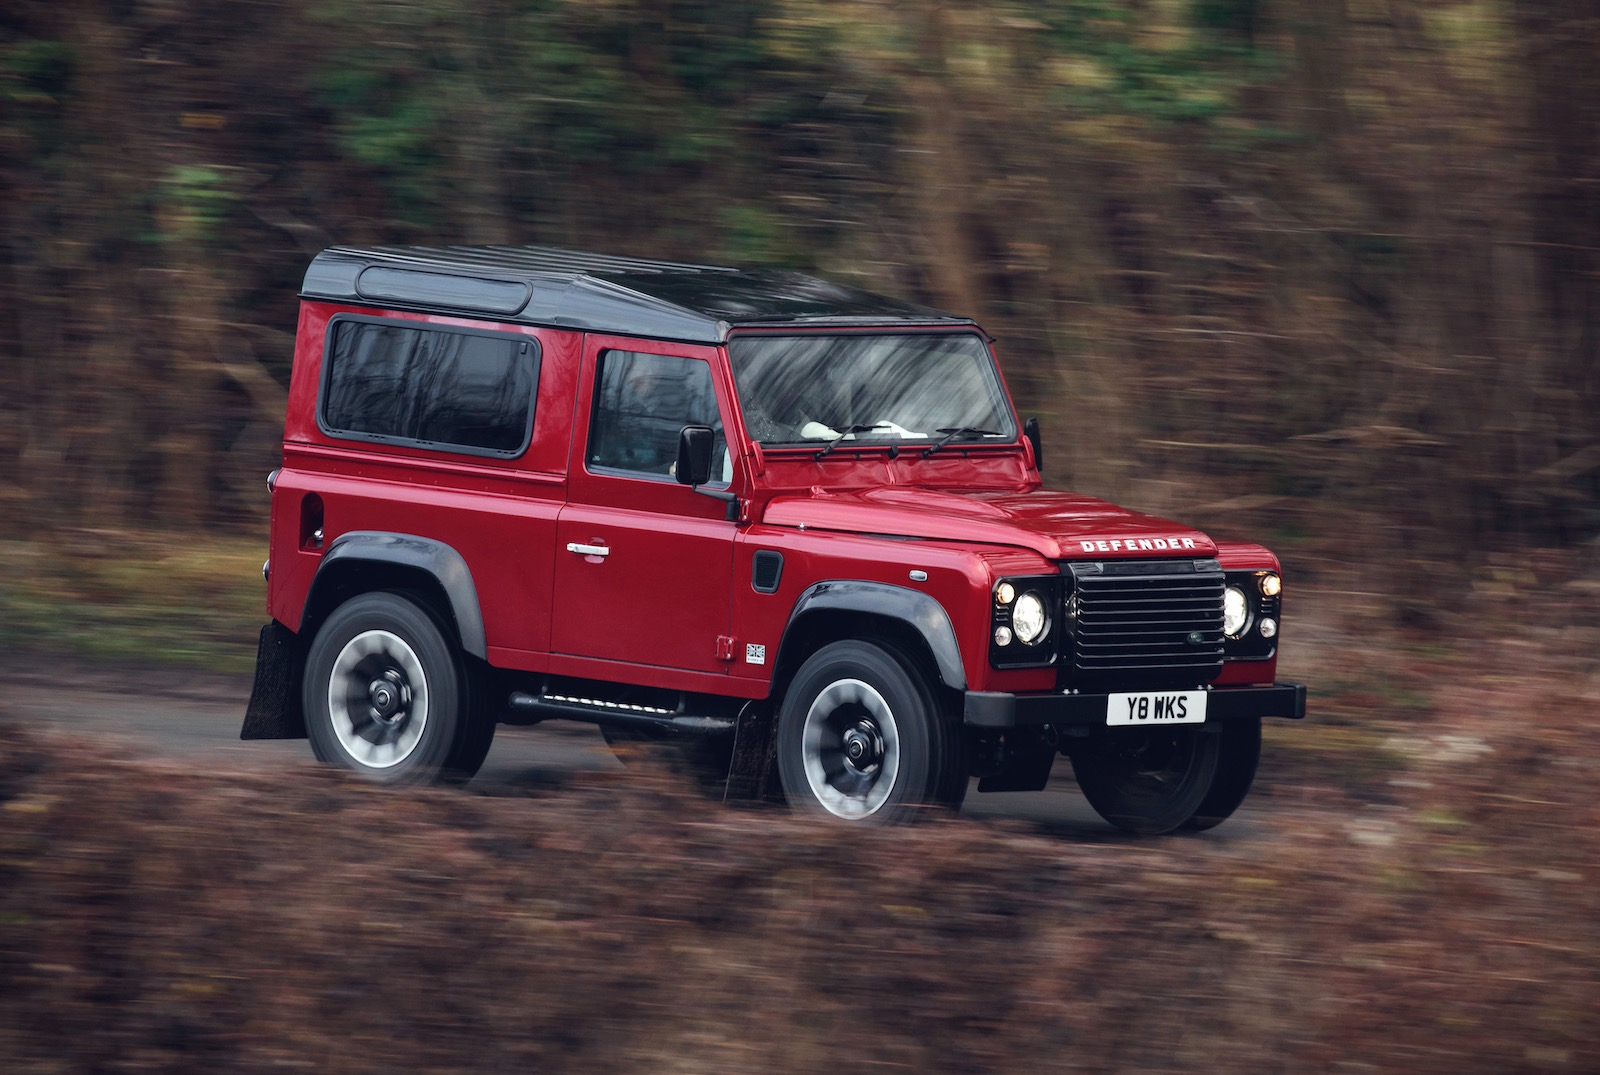 2018 land rover defender works v8 special edition announced performancedrive. Black Bedroom Furniture Sets. Home Design Ideas